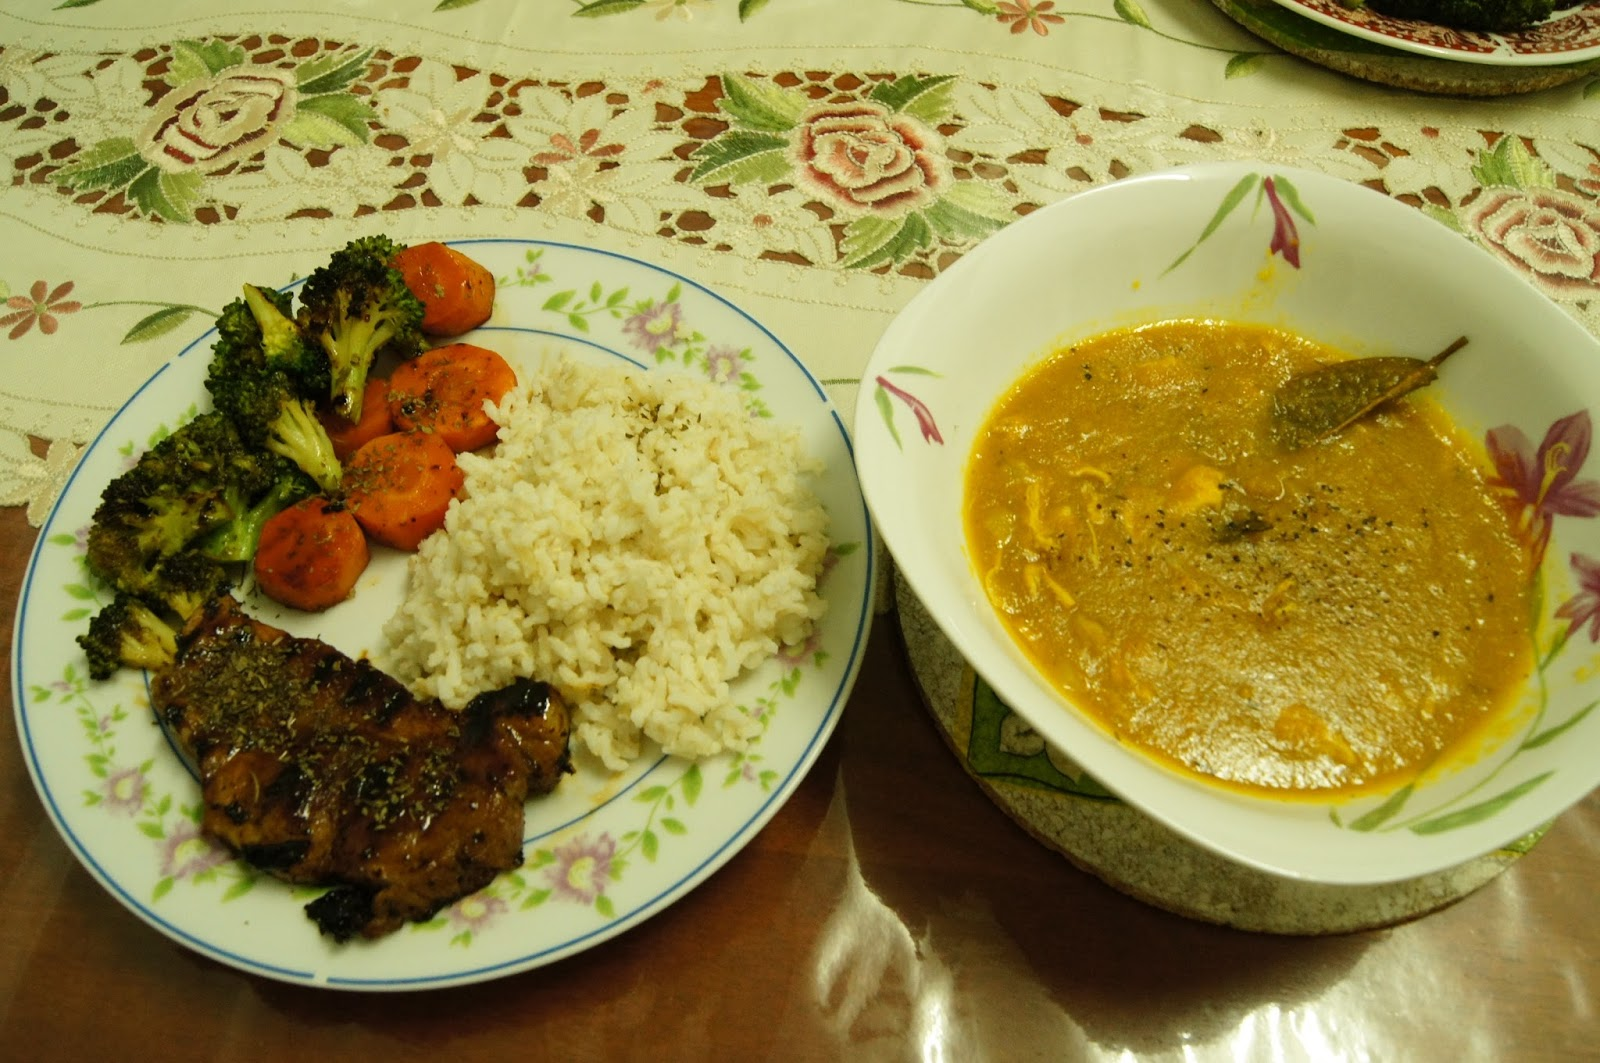 Painted Lips: Grilled pork & vegetables, and pumpkin stew